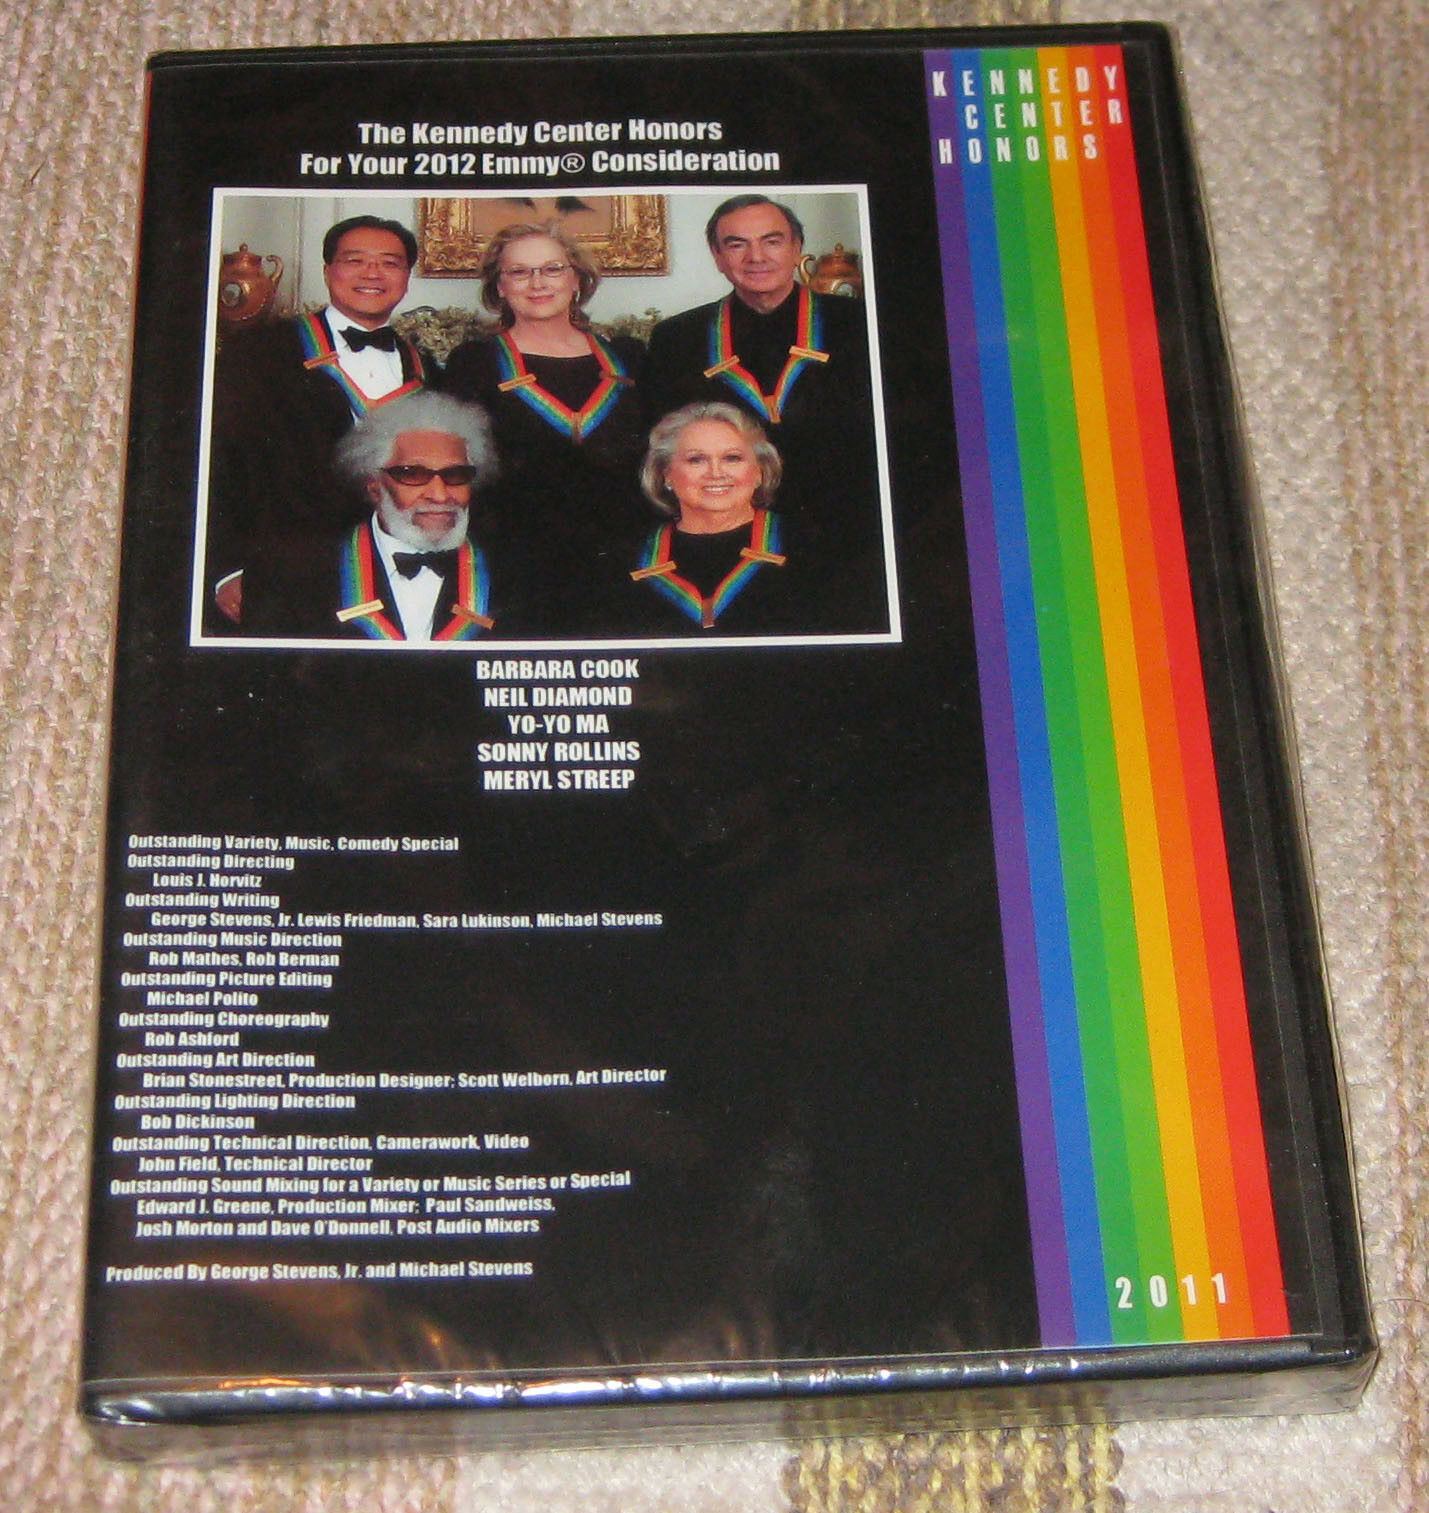 Meryl Streep, Neil Diamond, Barbara Cook, Yo-Yo Ma, and Sonny Rollins in The Kennedy Center Honors: A Celebration of the Performing Arts (2011)